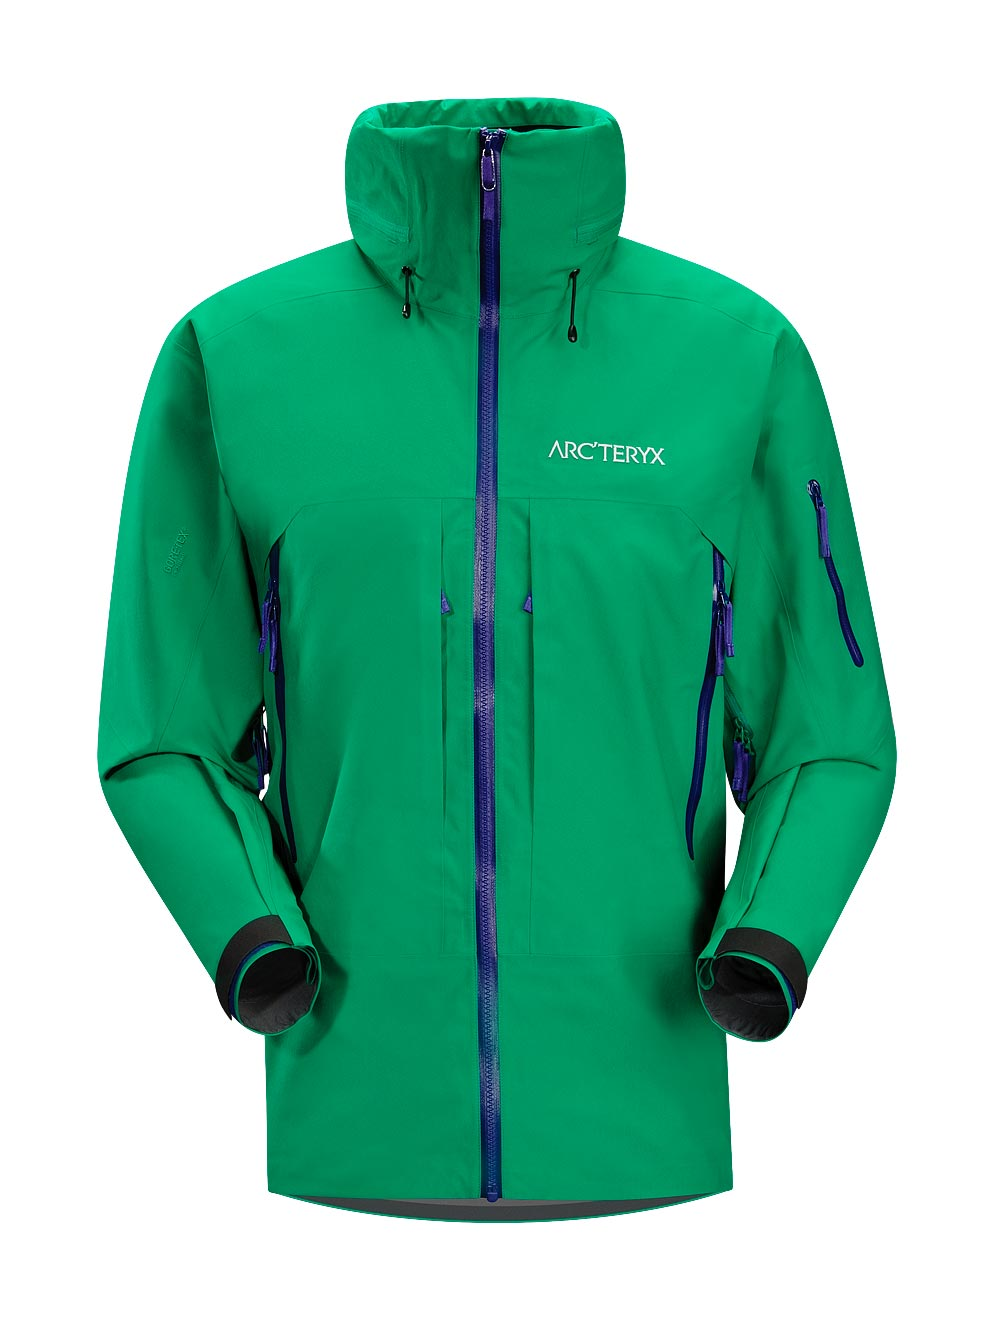 Arcteryx Green Light Vertical Jacket